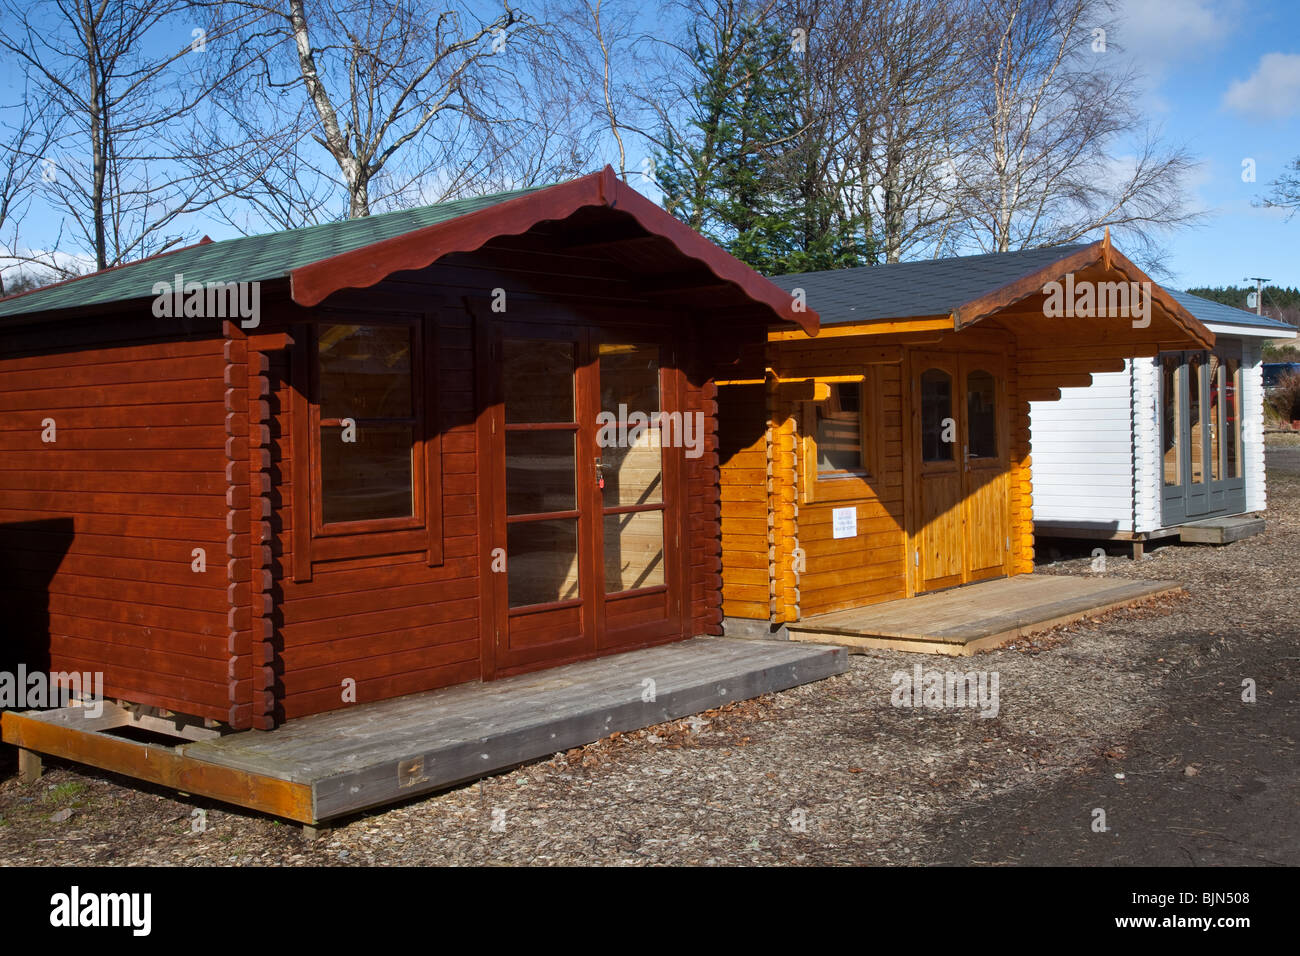 garden sheds east kilbride garden sheds east kilbride shed fence centre for quality to decorating - Garden Sheds Edinburgh